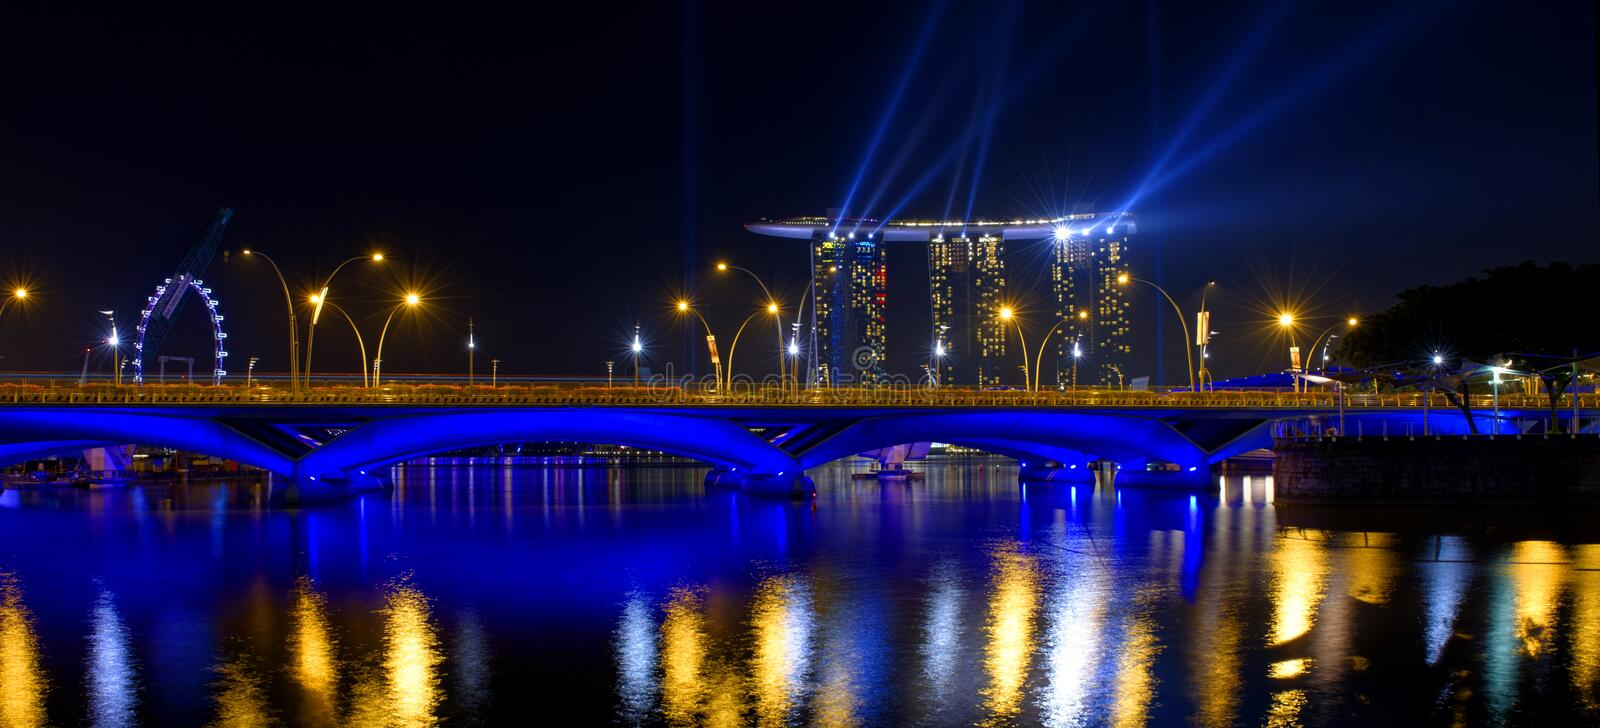 Marina Bay Sands hotel and Singapore Flyer. The Ferris wheel in Singapore royalty free stock photography